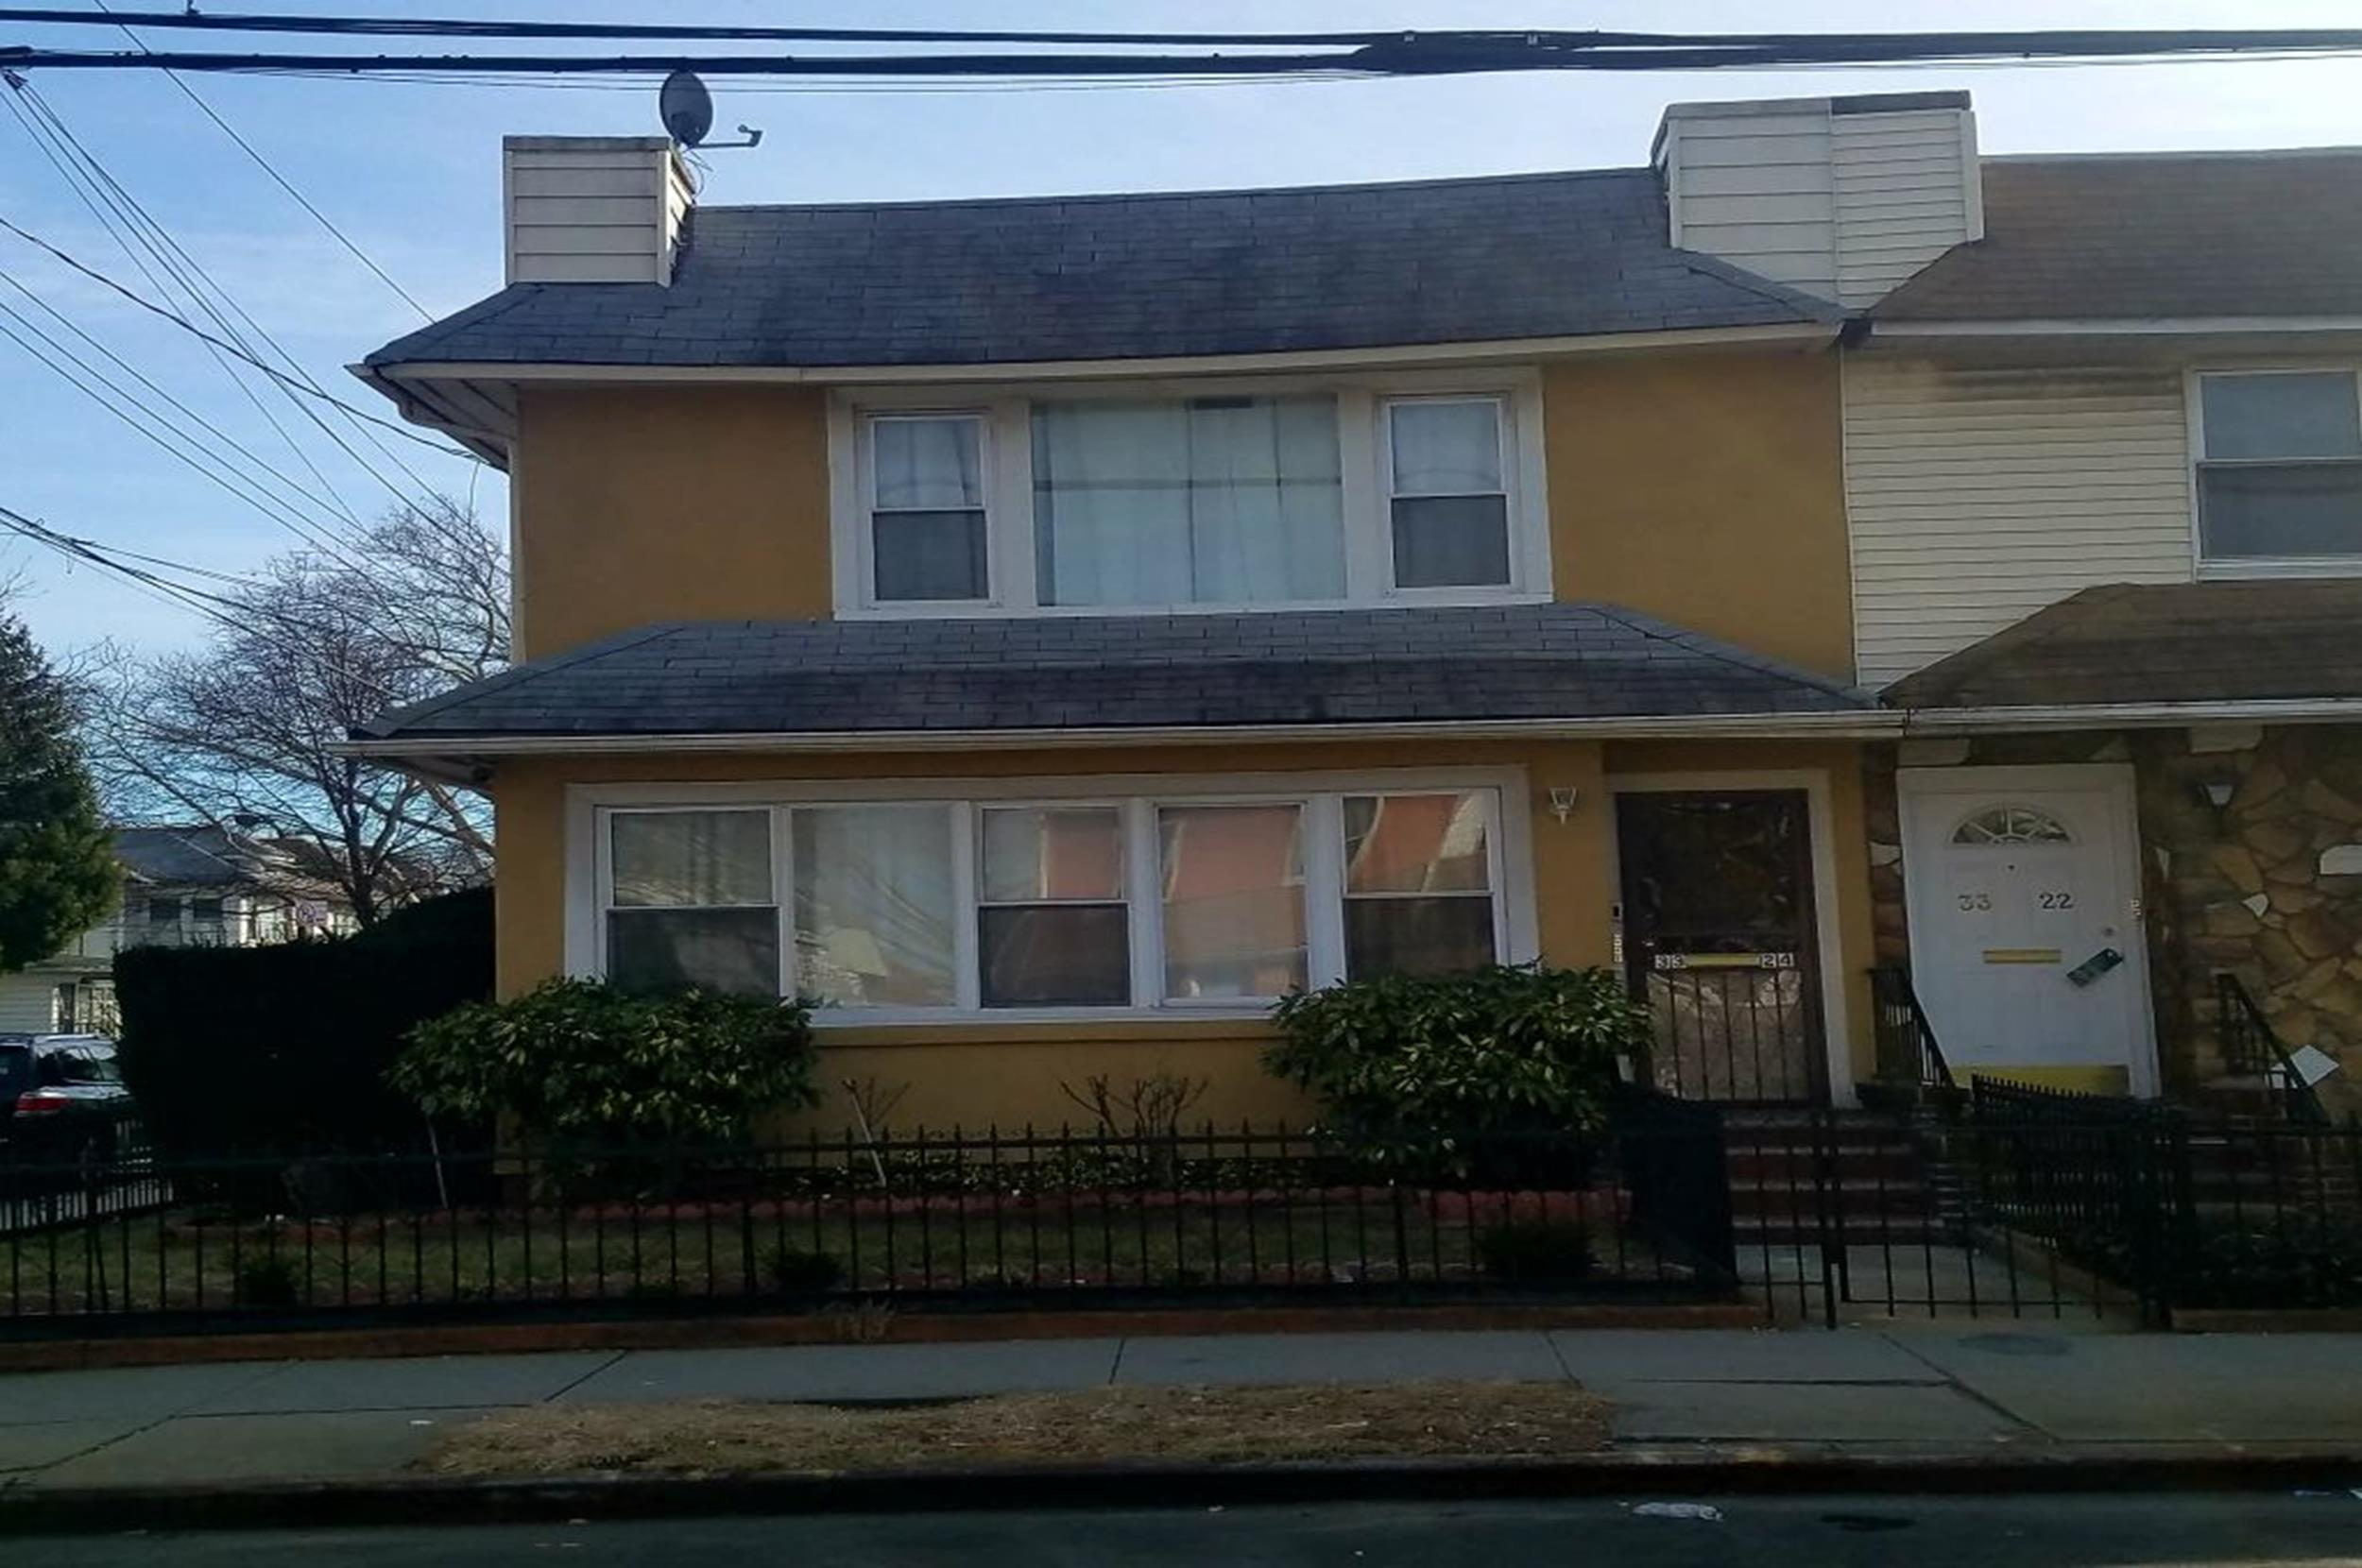 2 family home for sale in midwood brooklyn, homes for sale in midwood